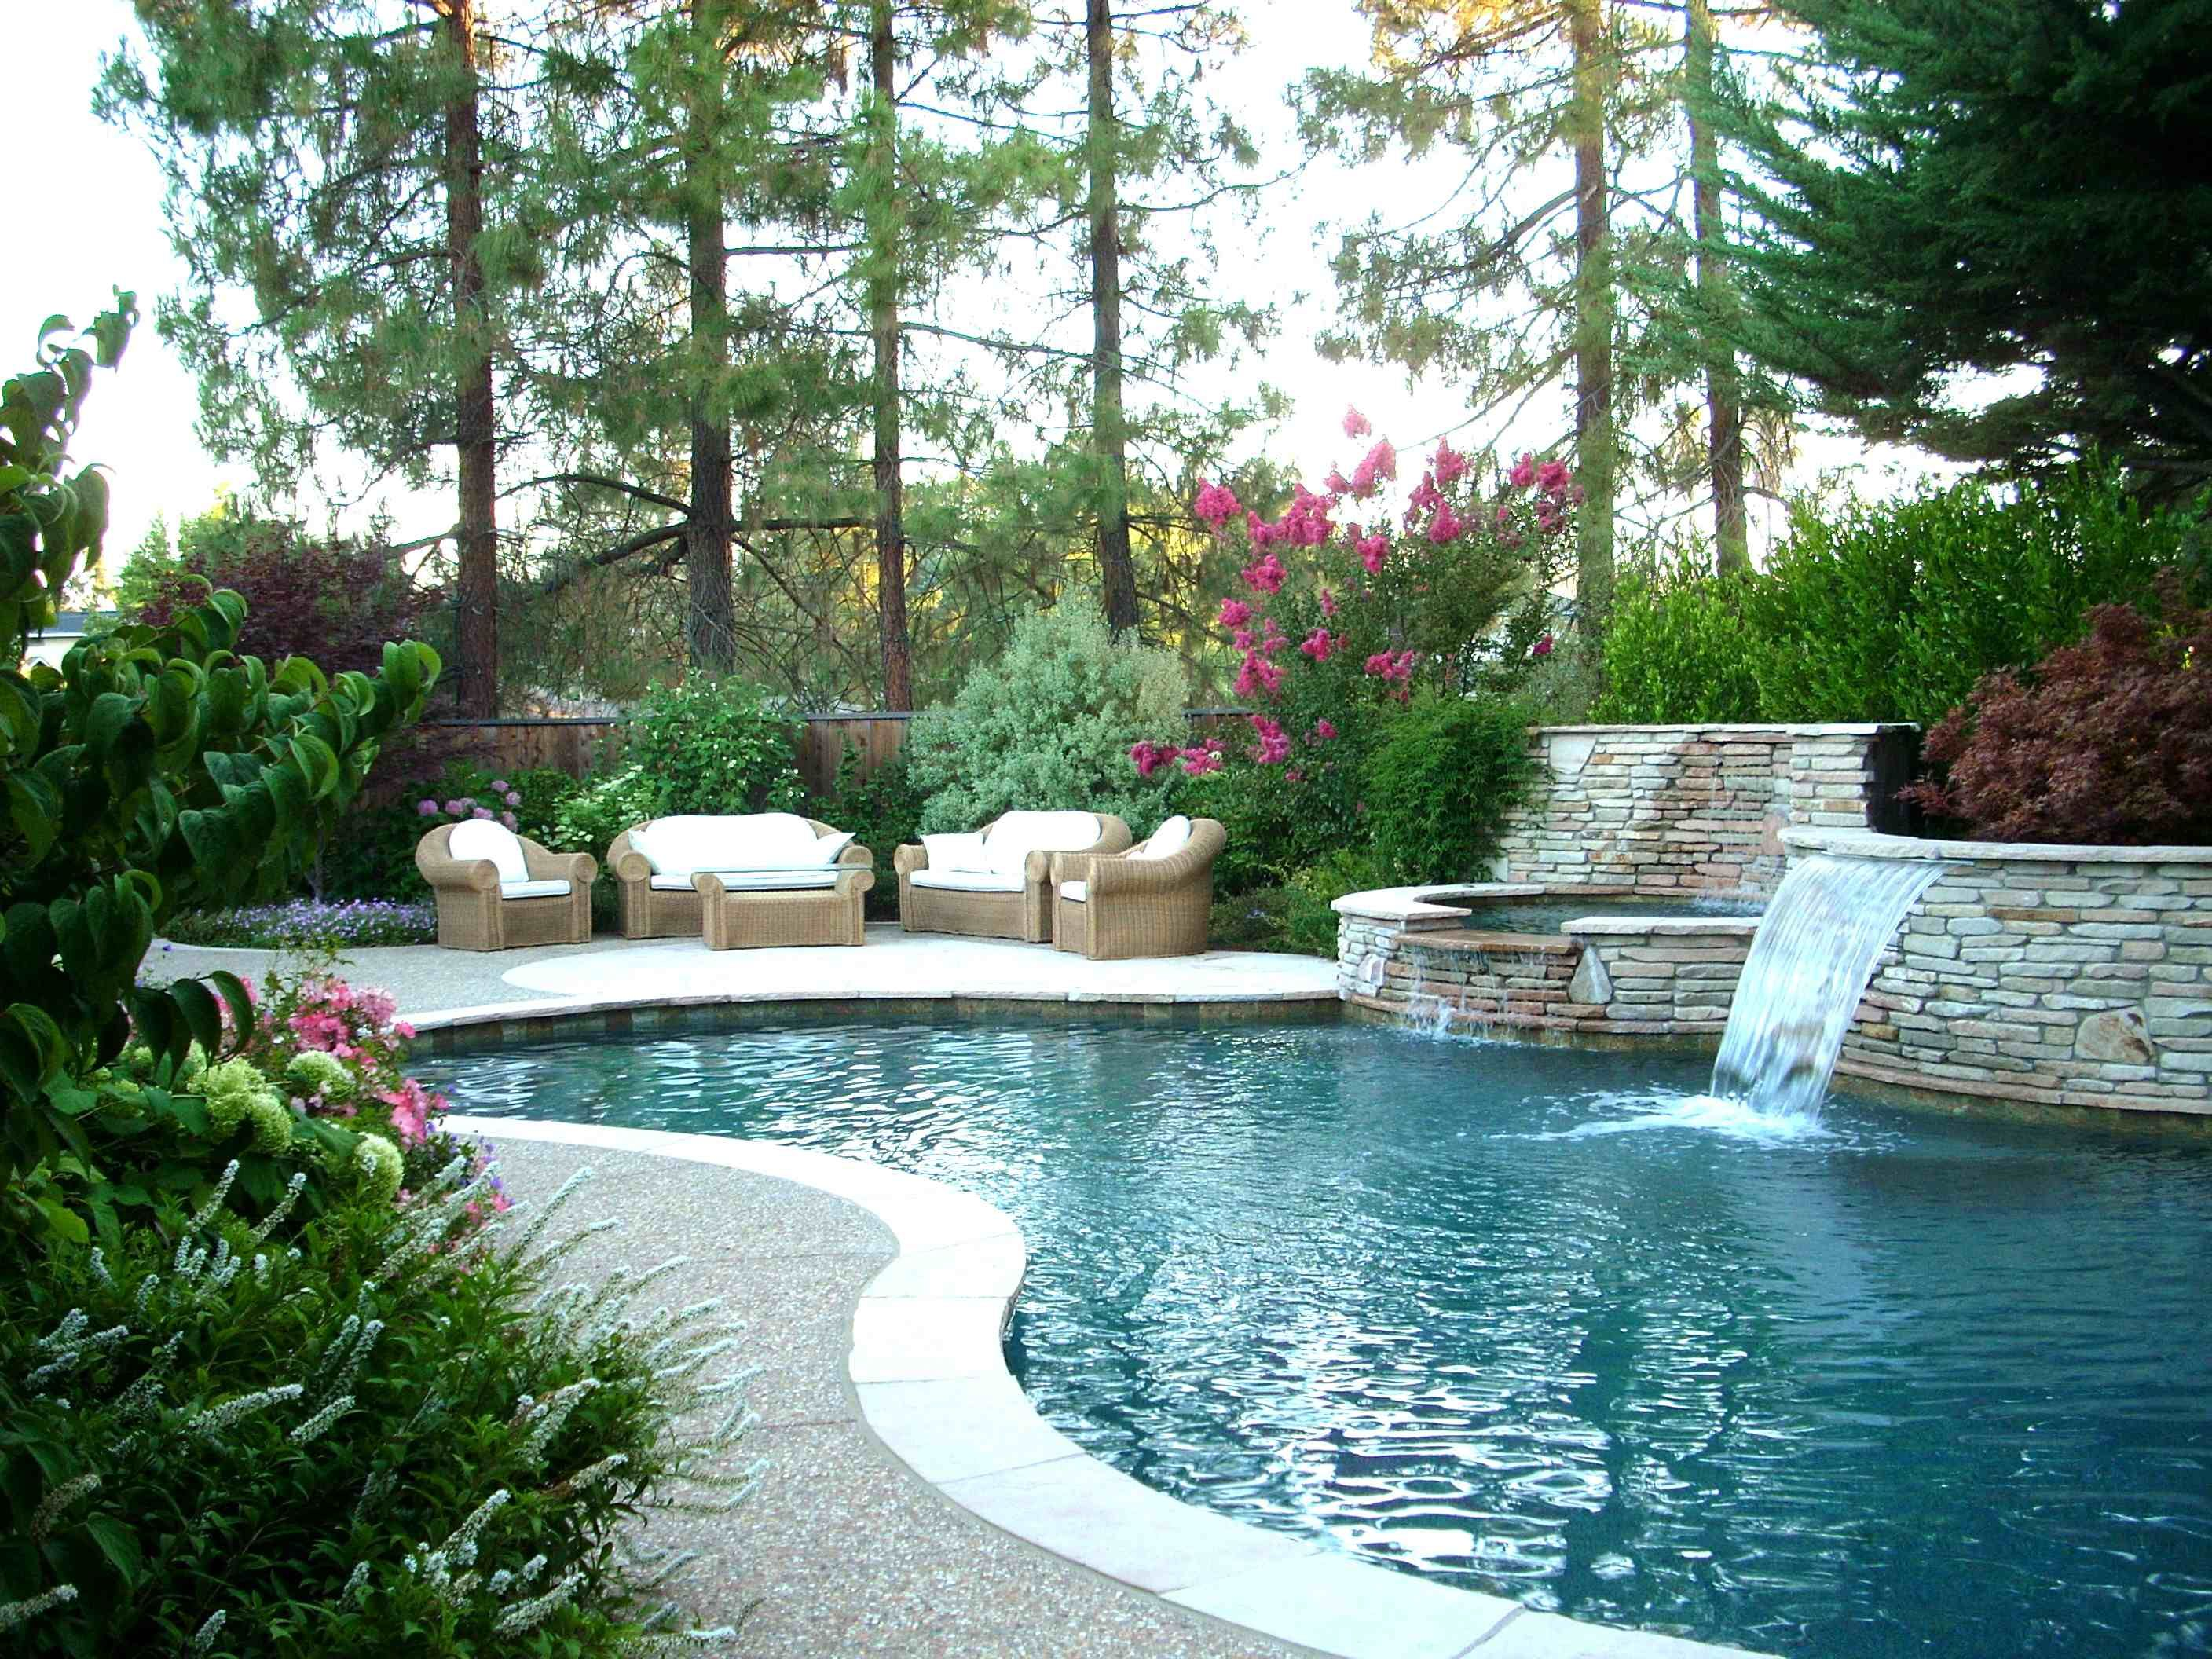 Landscaped pool pictures landscape design ideas for for Garden landscape pictures